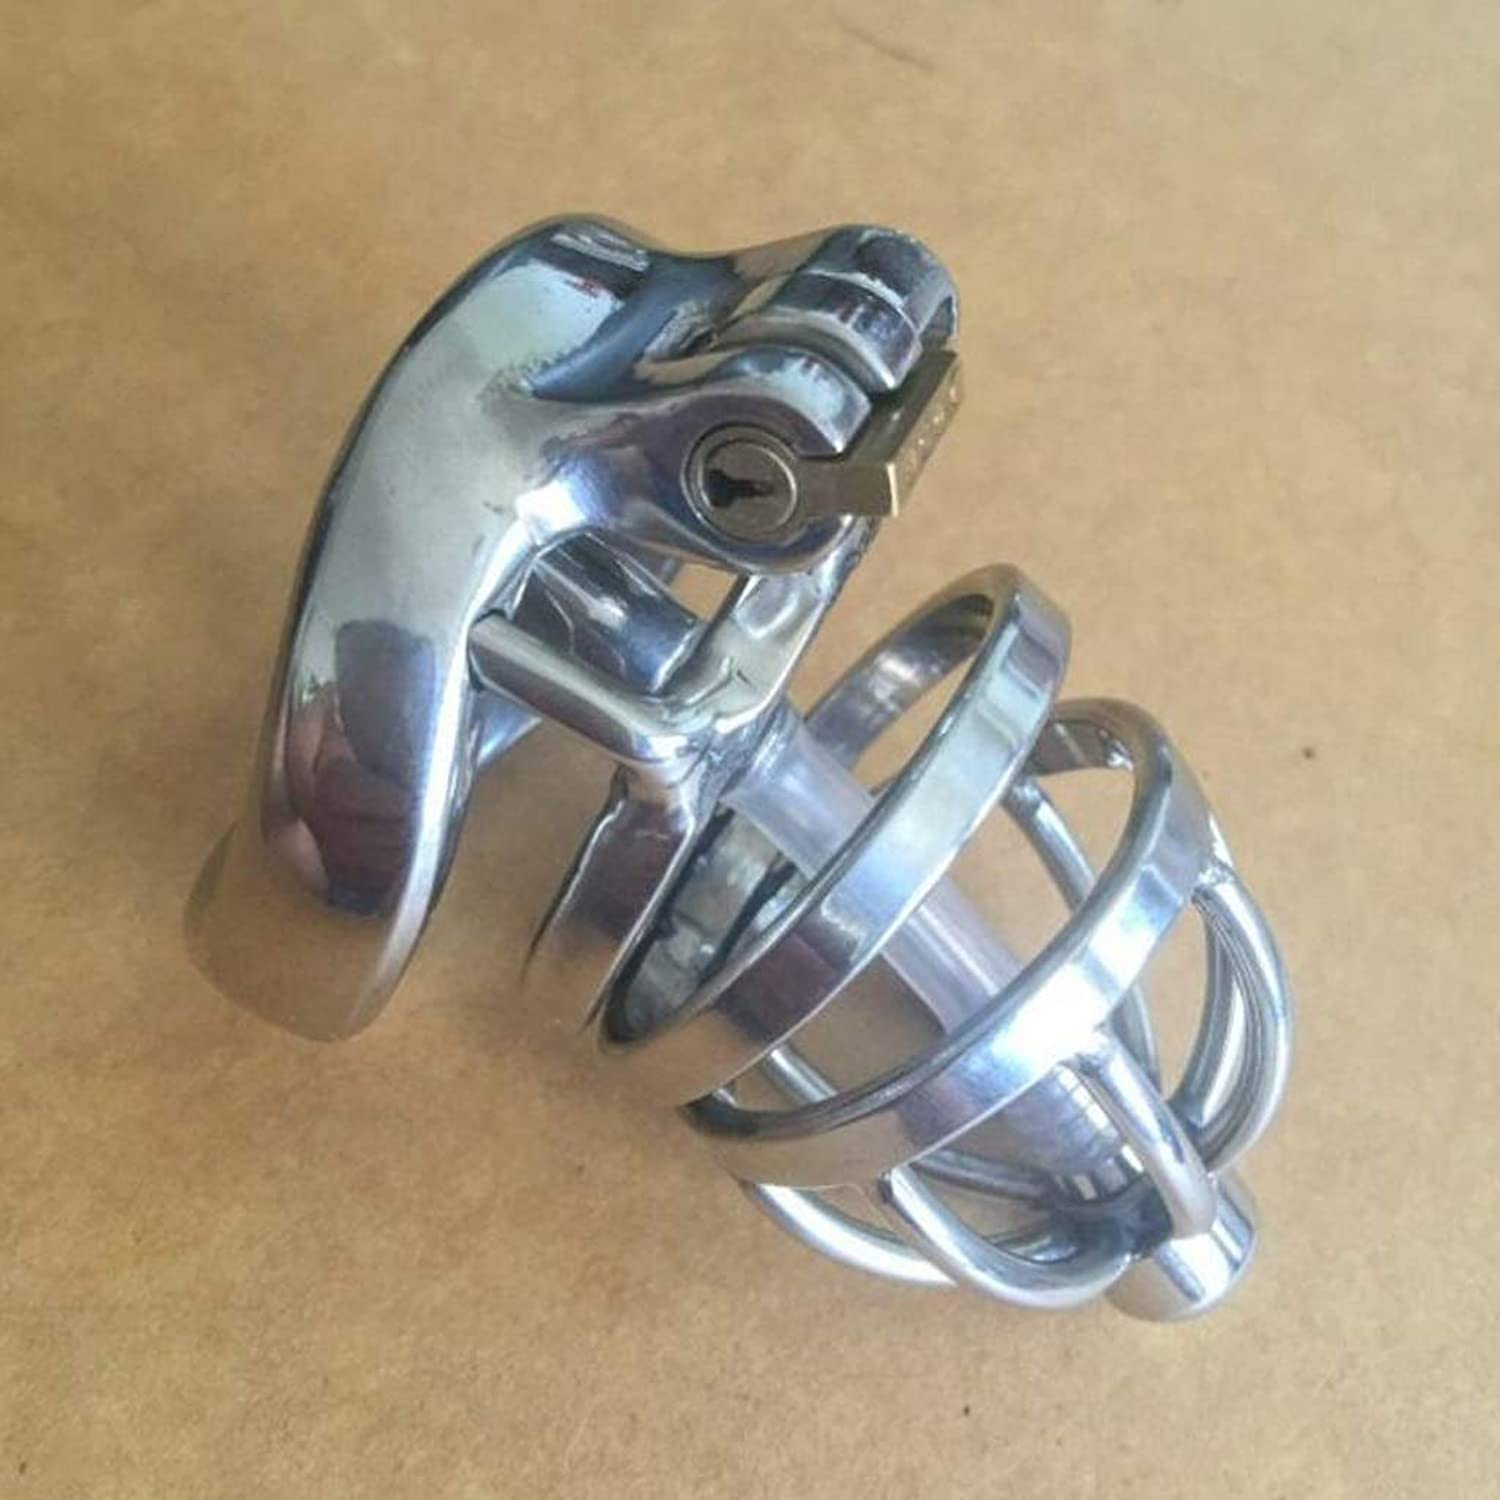 CJH Alternative Toy Chastity Lock Male Penis Testicle